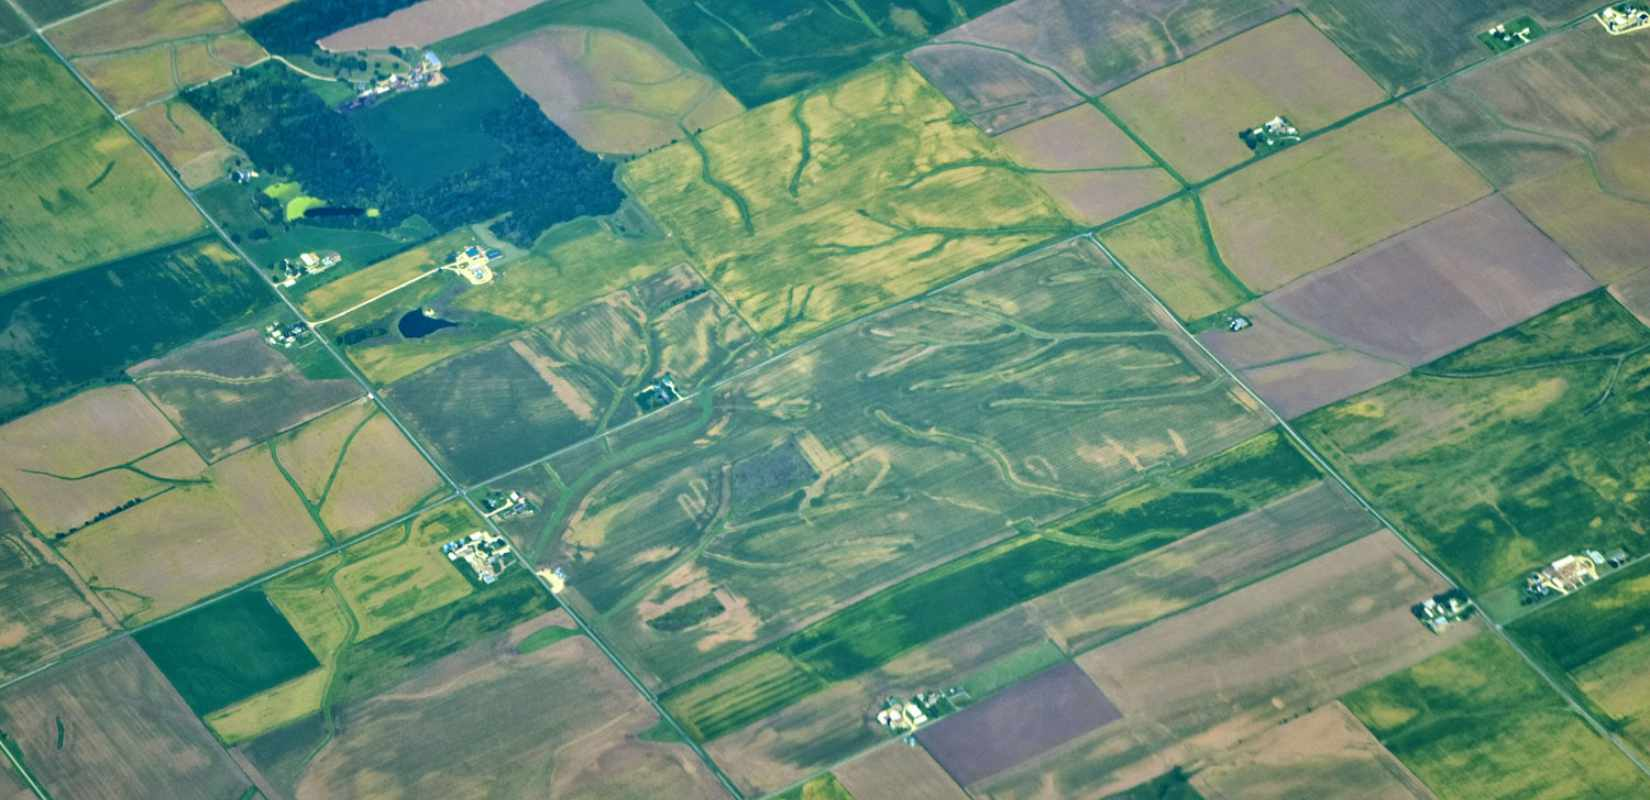 aerial photograph of farmland